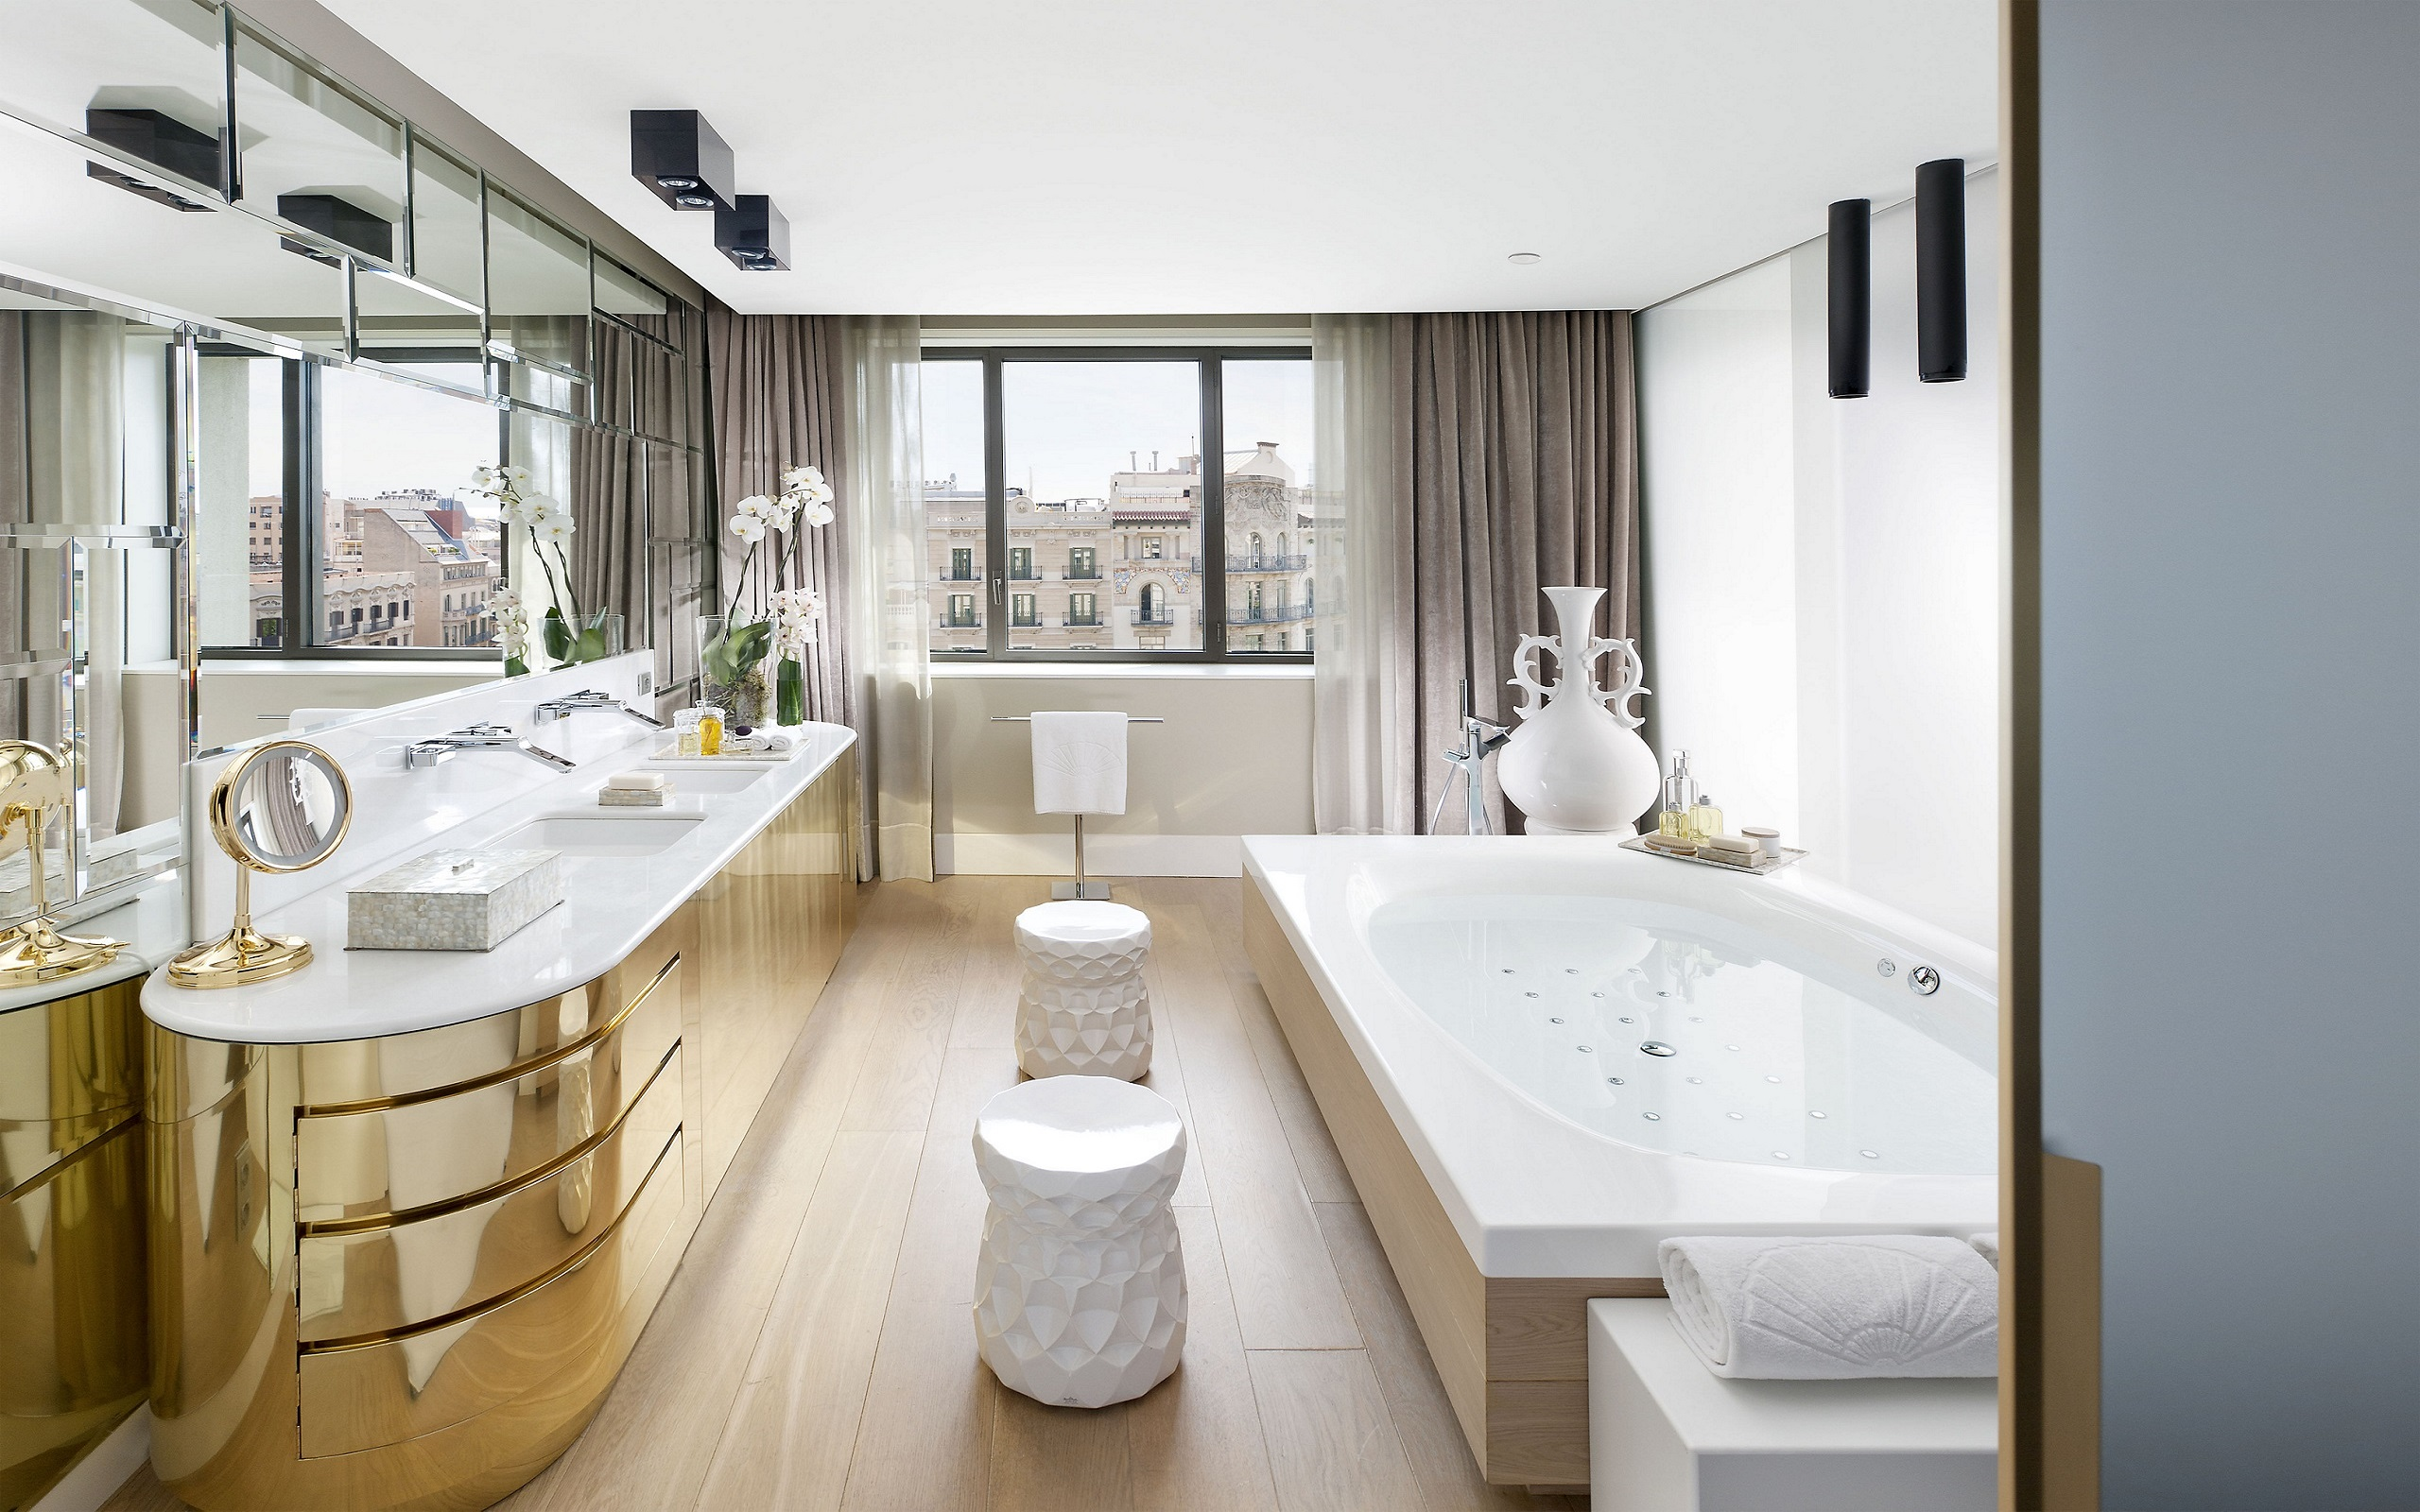 The Barcelona Suite in the Mandarin Oriental Hotel